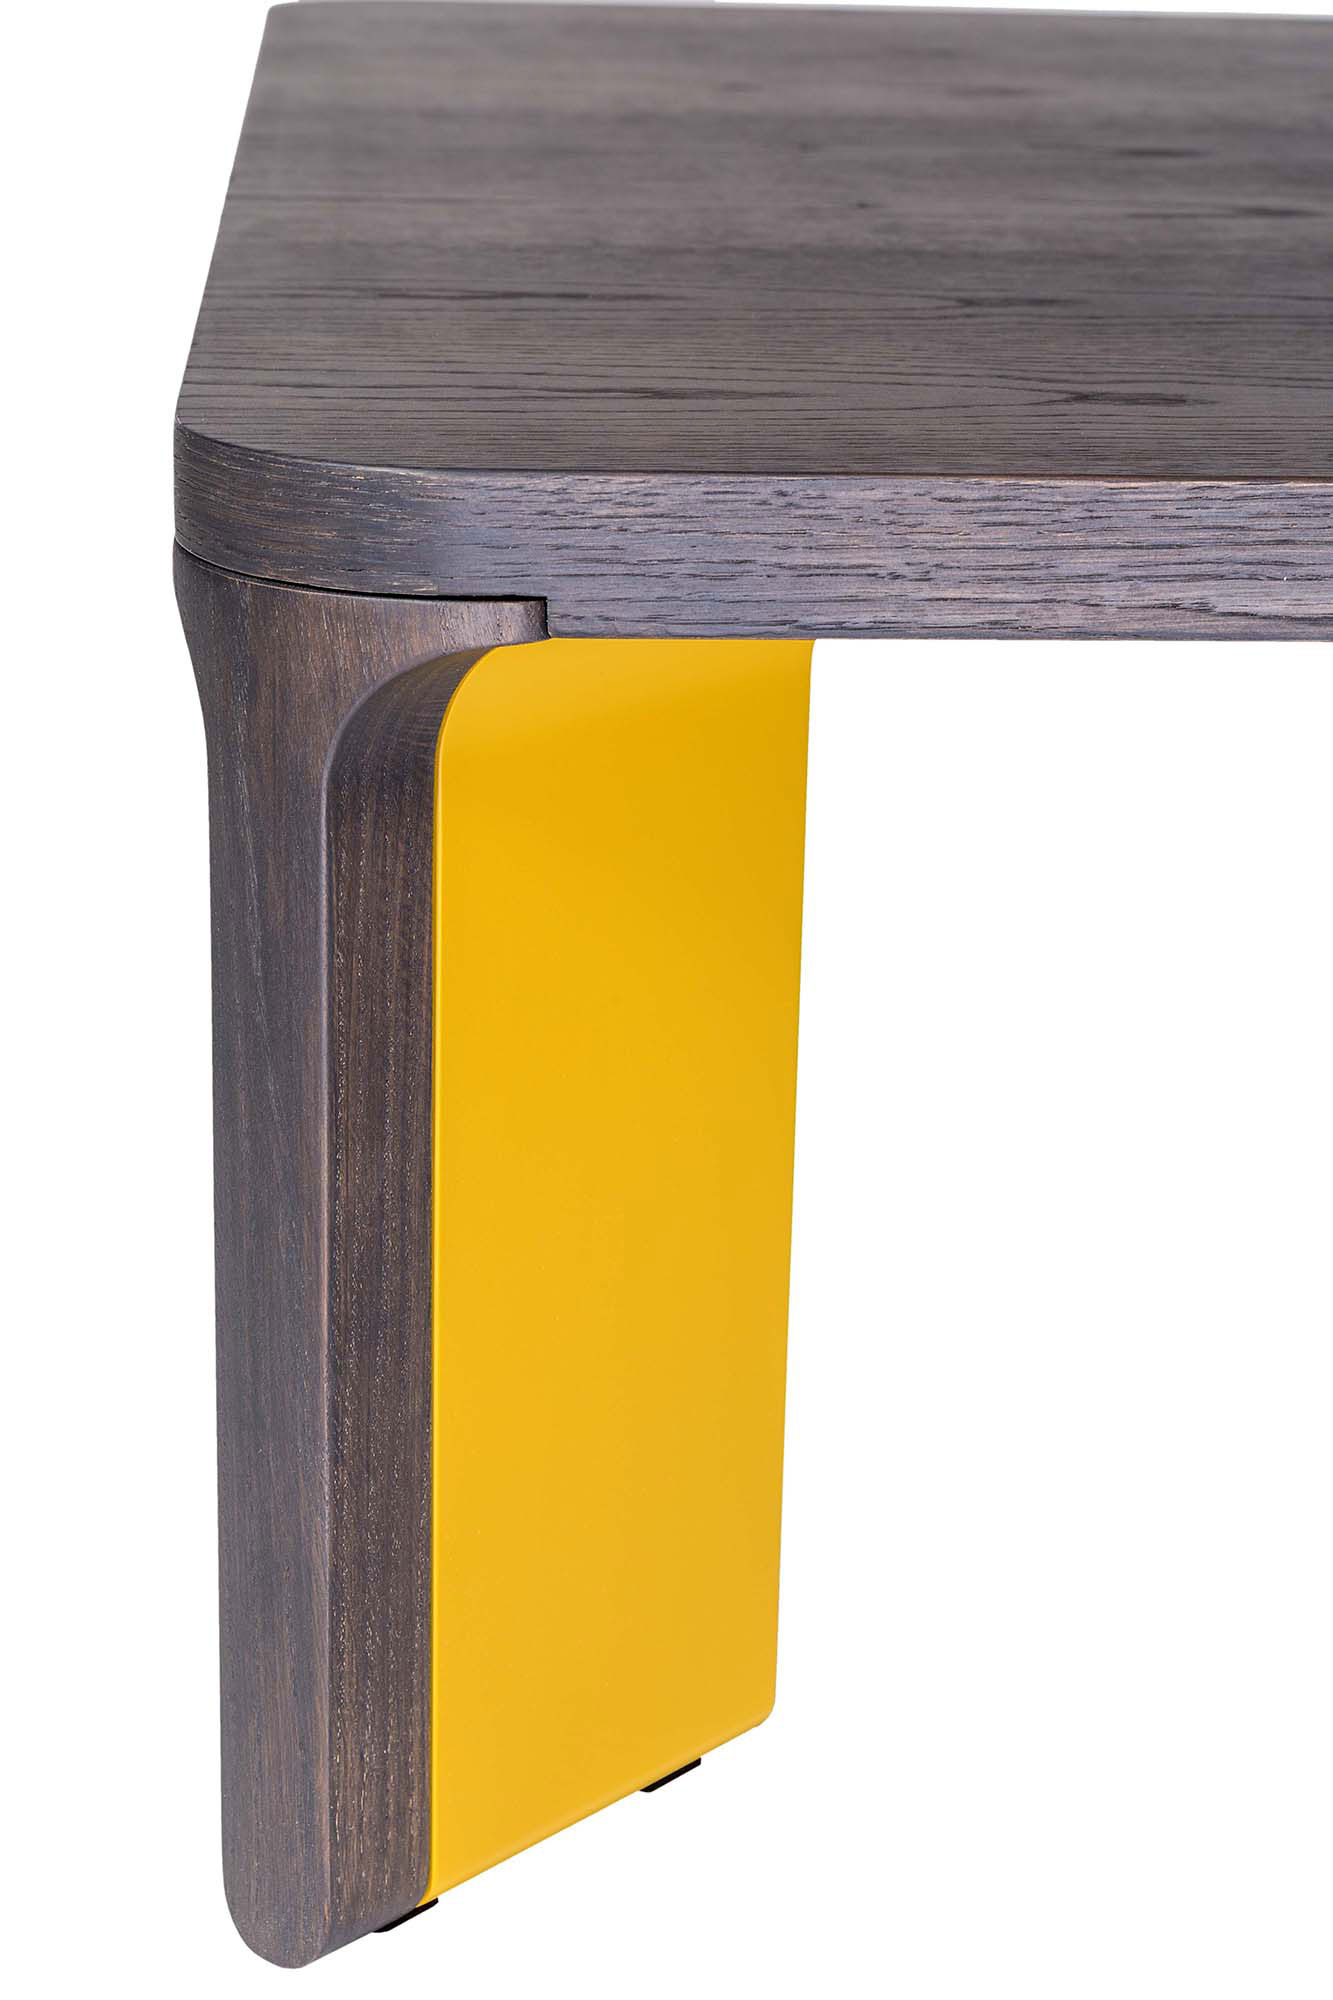 Acro-bat 007 Low Table - <p>Low table in various sizes with round corners. Top in wood<br /> and legs in two sections in wood and lacquer.</p>  | Matter of Stuff